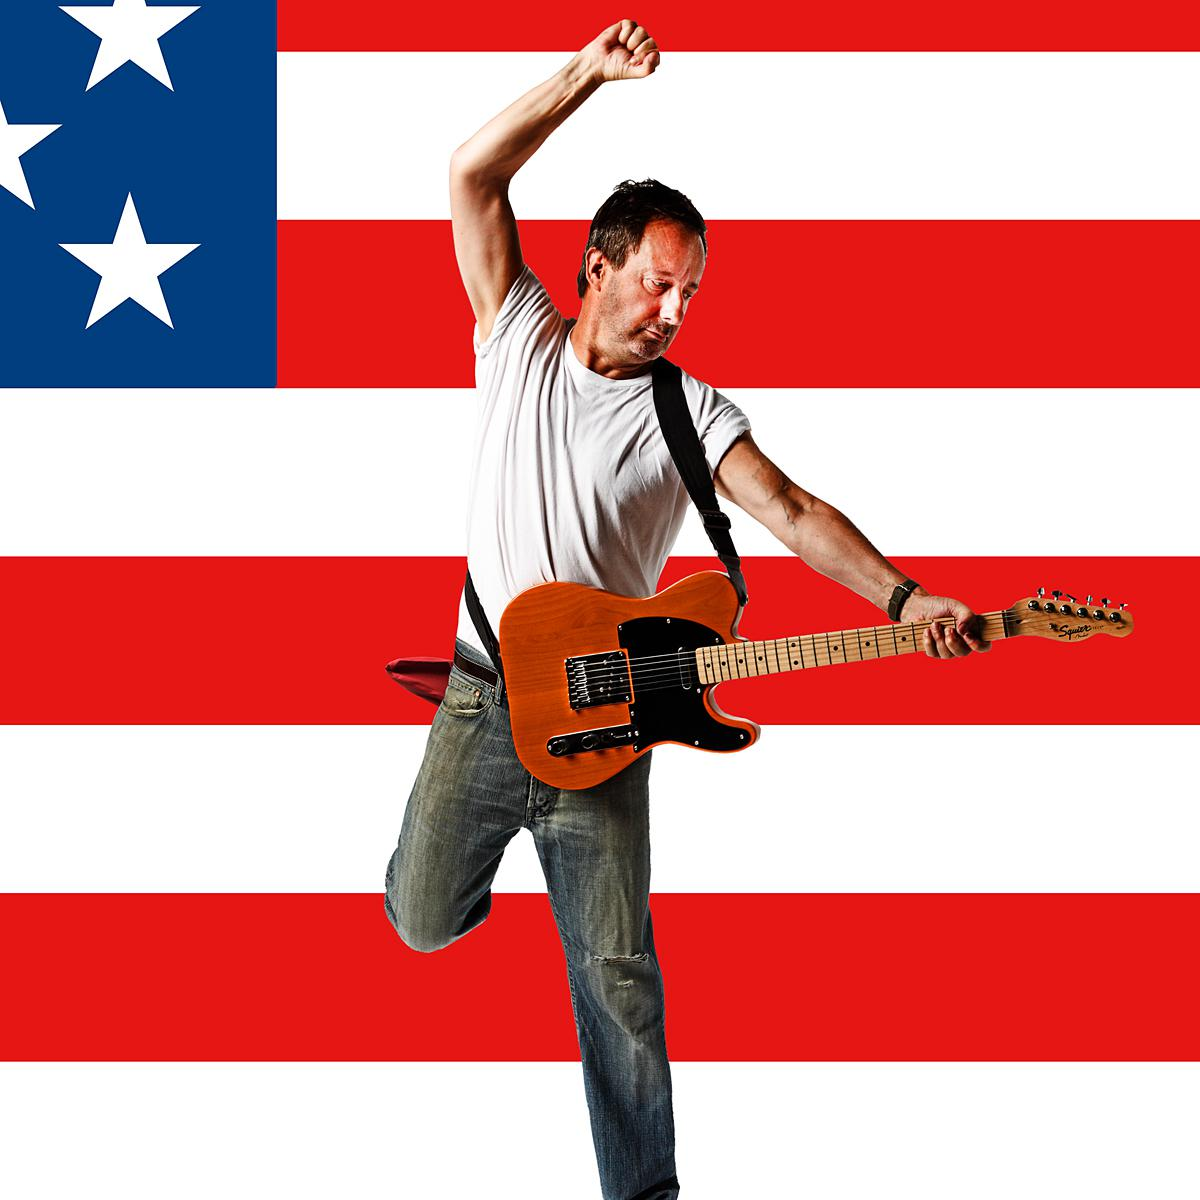 Not Bruce Springsteen by creative photographer Julian Hanford for APA annual feature in Shots Magazine